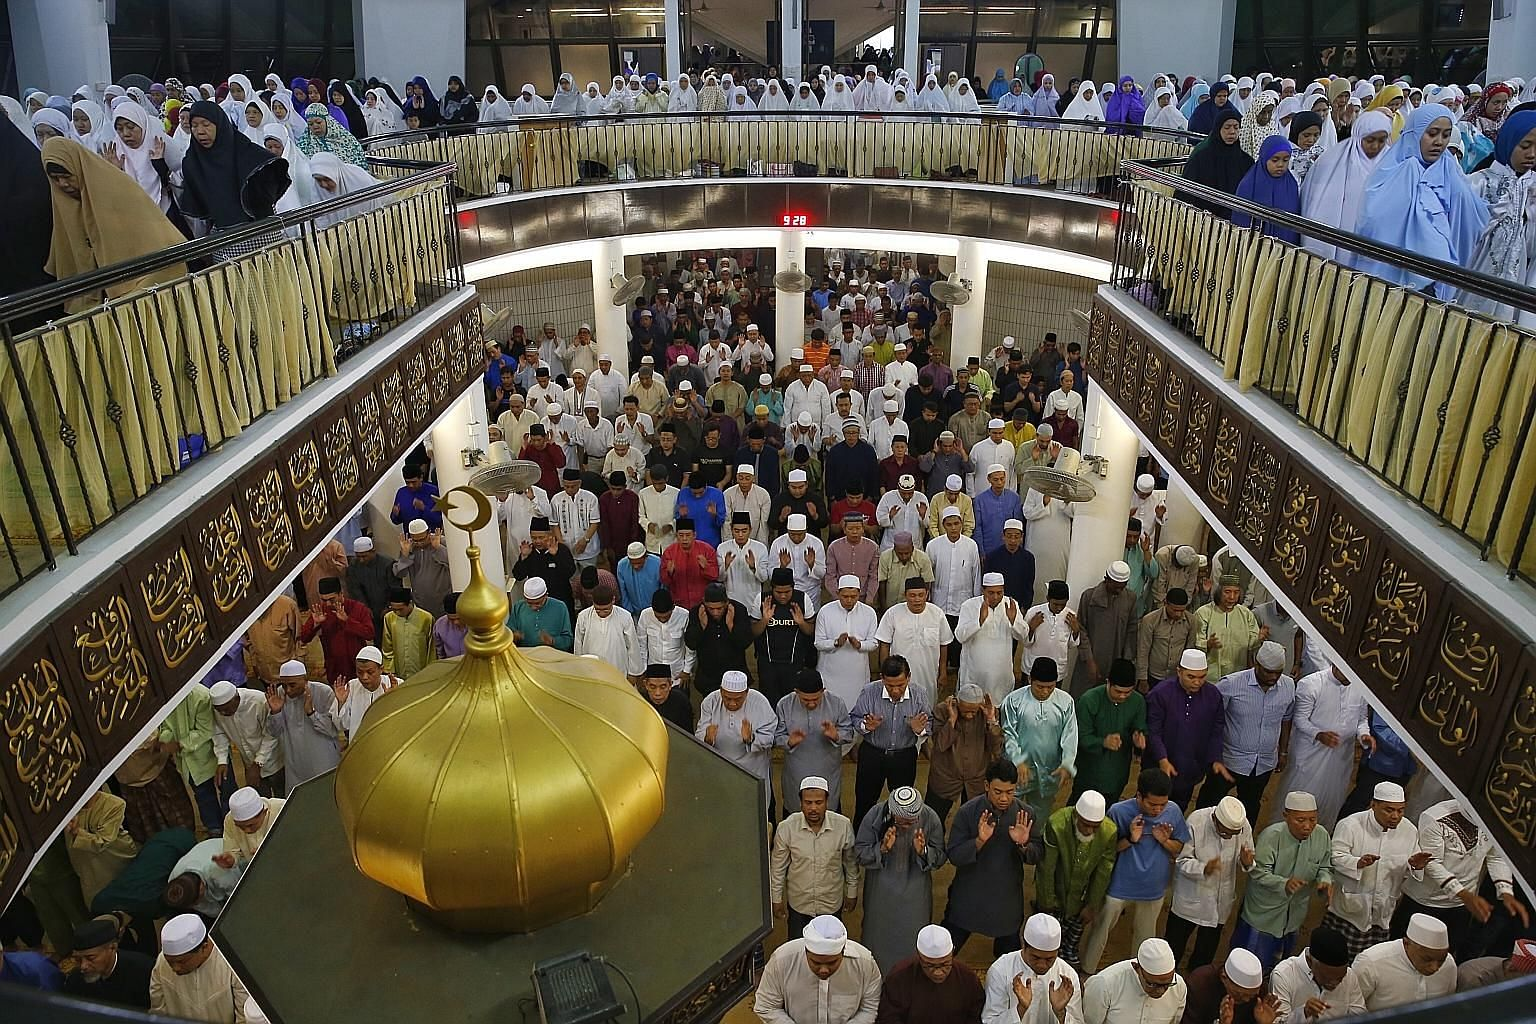 Muslims in Singapore at evening prayers to mark the eve of the first day of Ramadan in 2015.